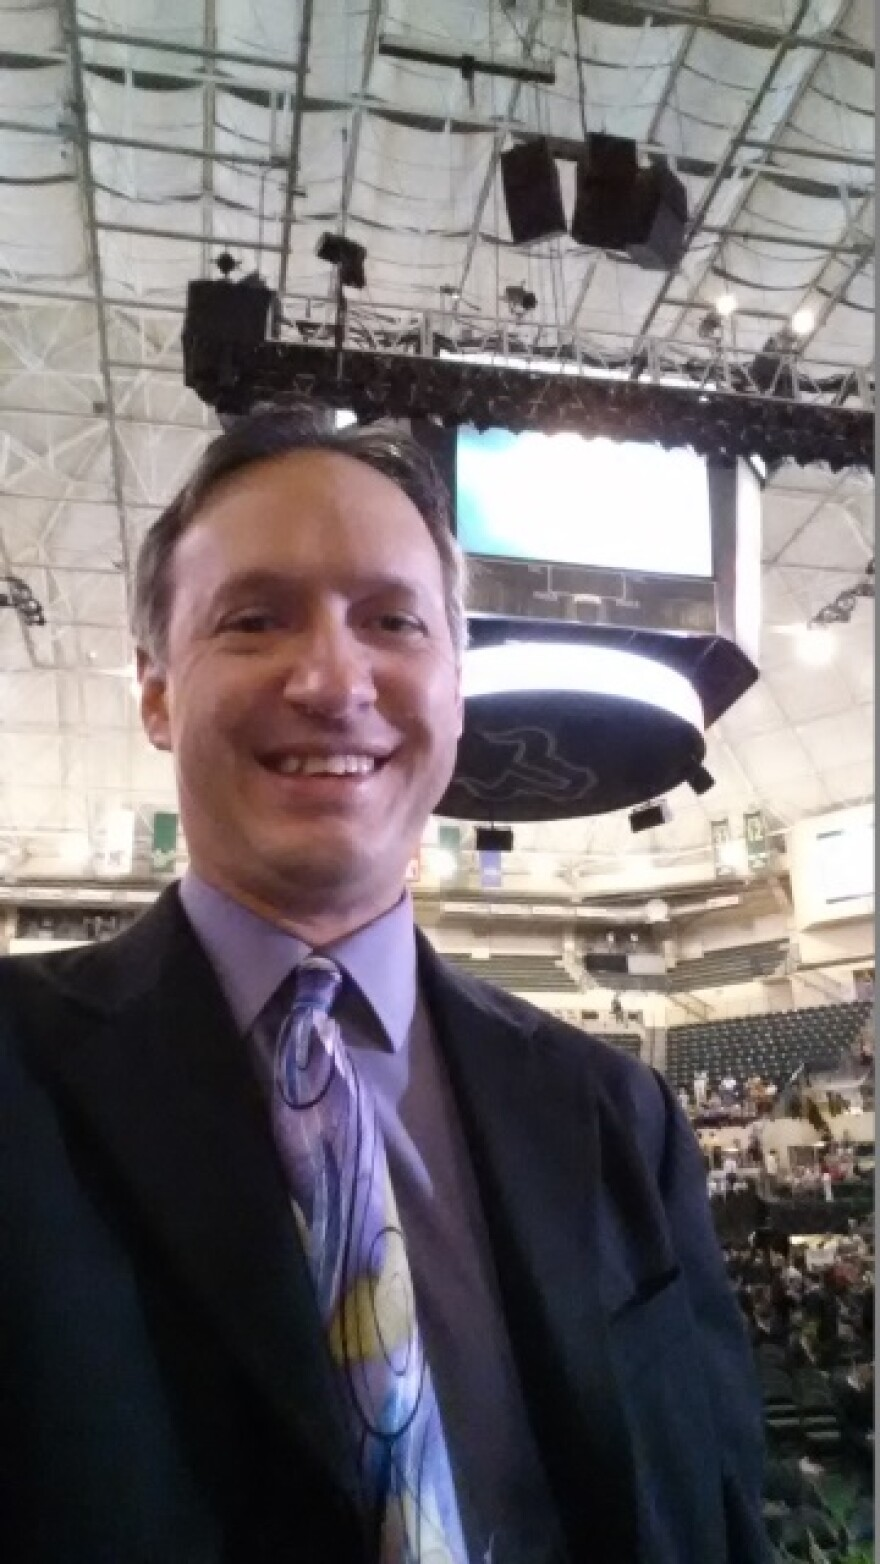 My one mandatory selfie before announcing graduates' names at the 9 a.m. May 3 commencement. Students taking selfies did not end up being an issue.